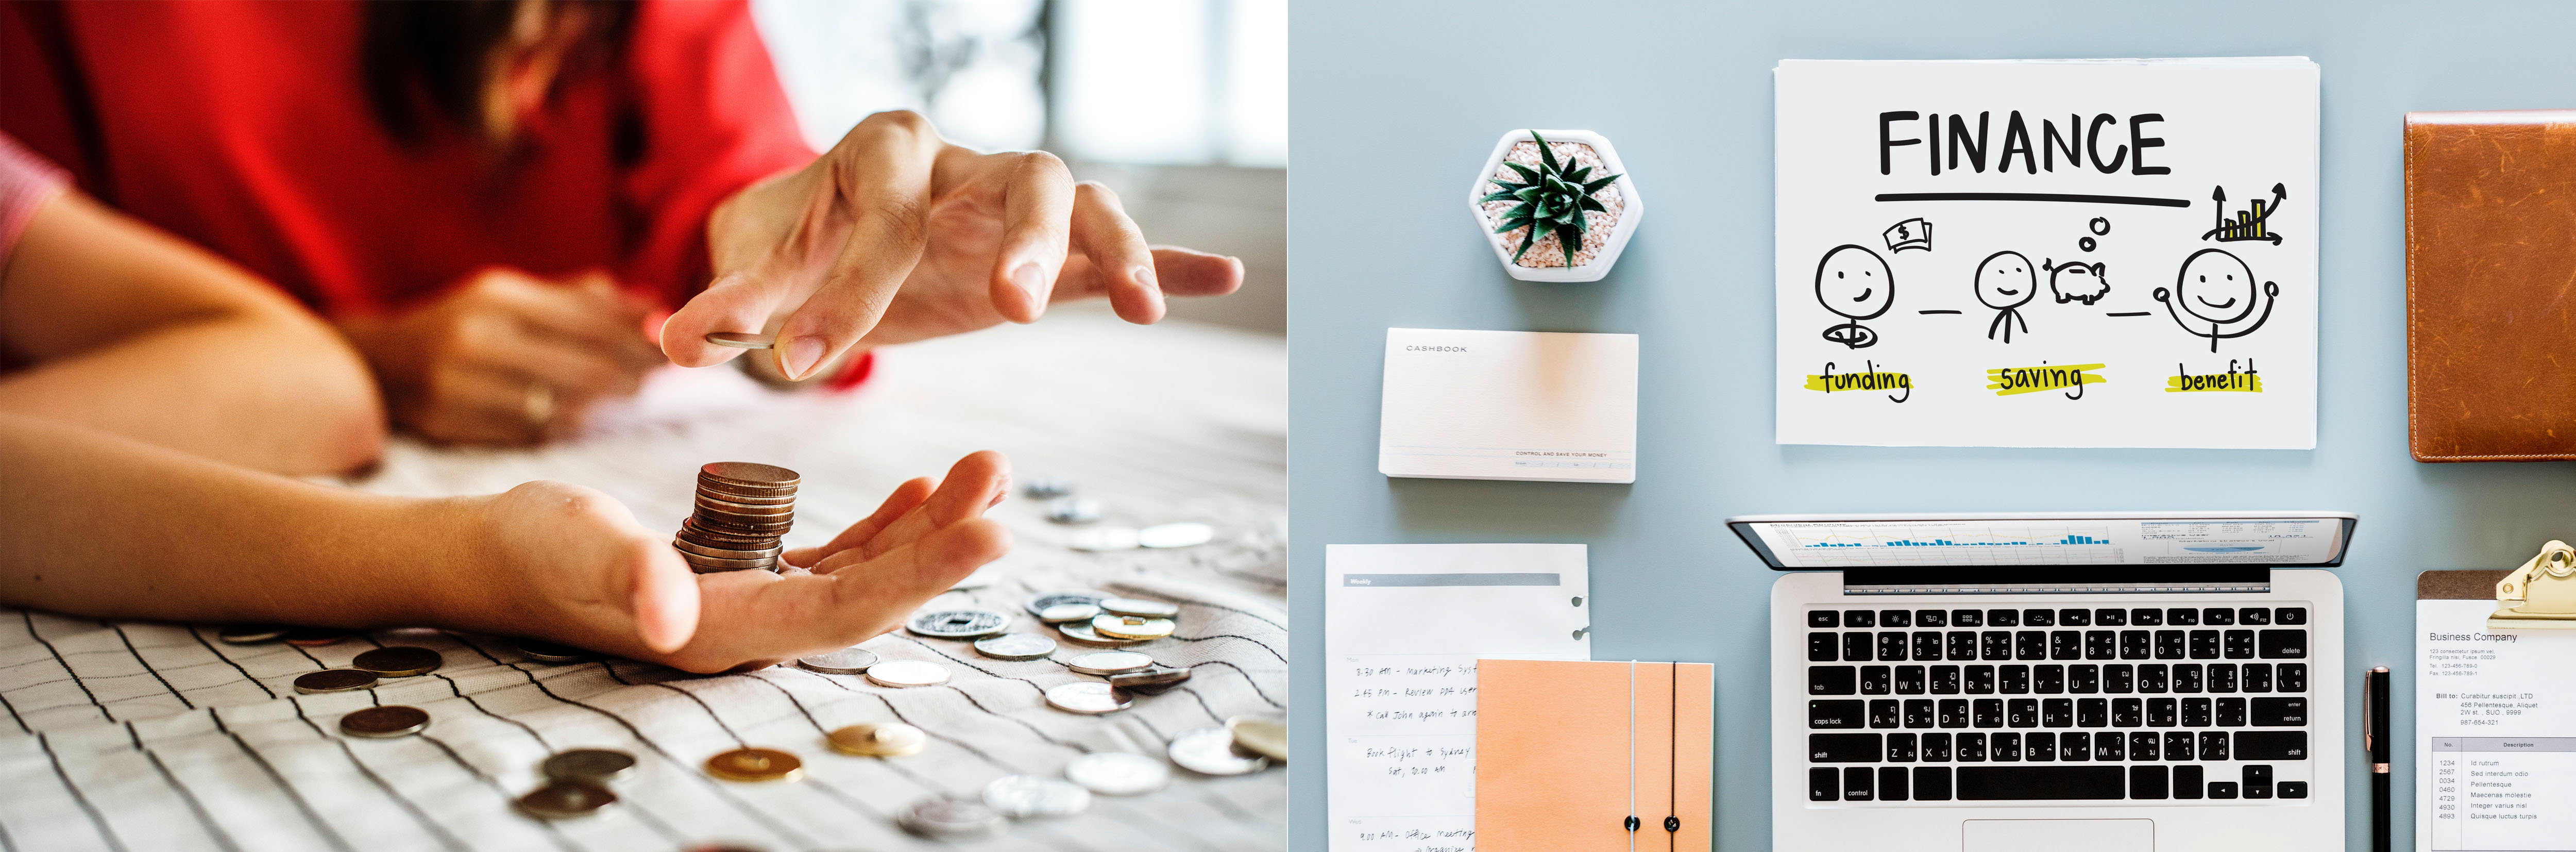 b764f4c7339f0 Financial wellbeing involves managing short and long-term goals for our  personal finances to reduce stress and build towards financial security and  ...